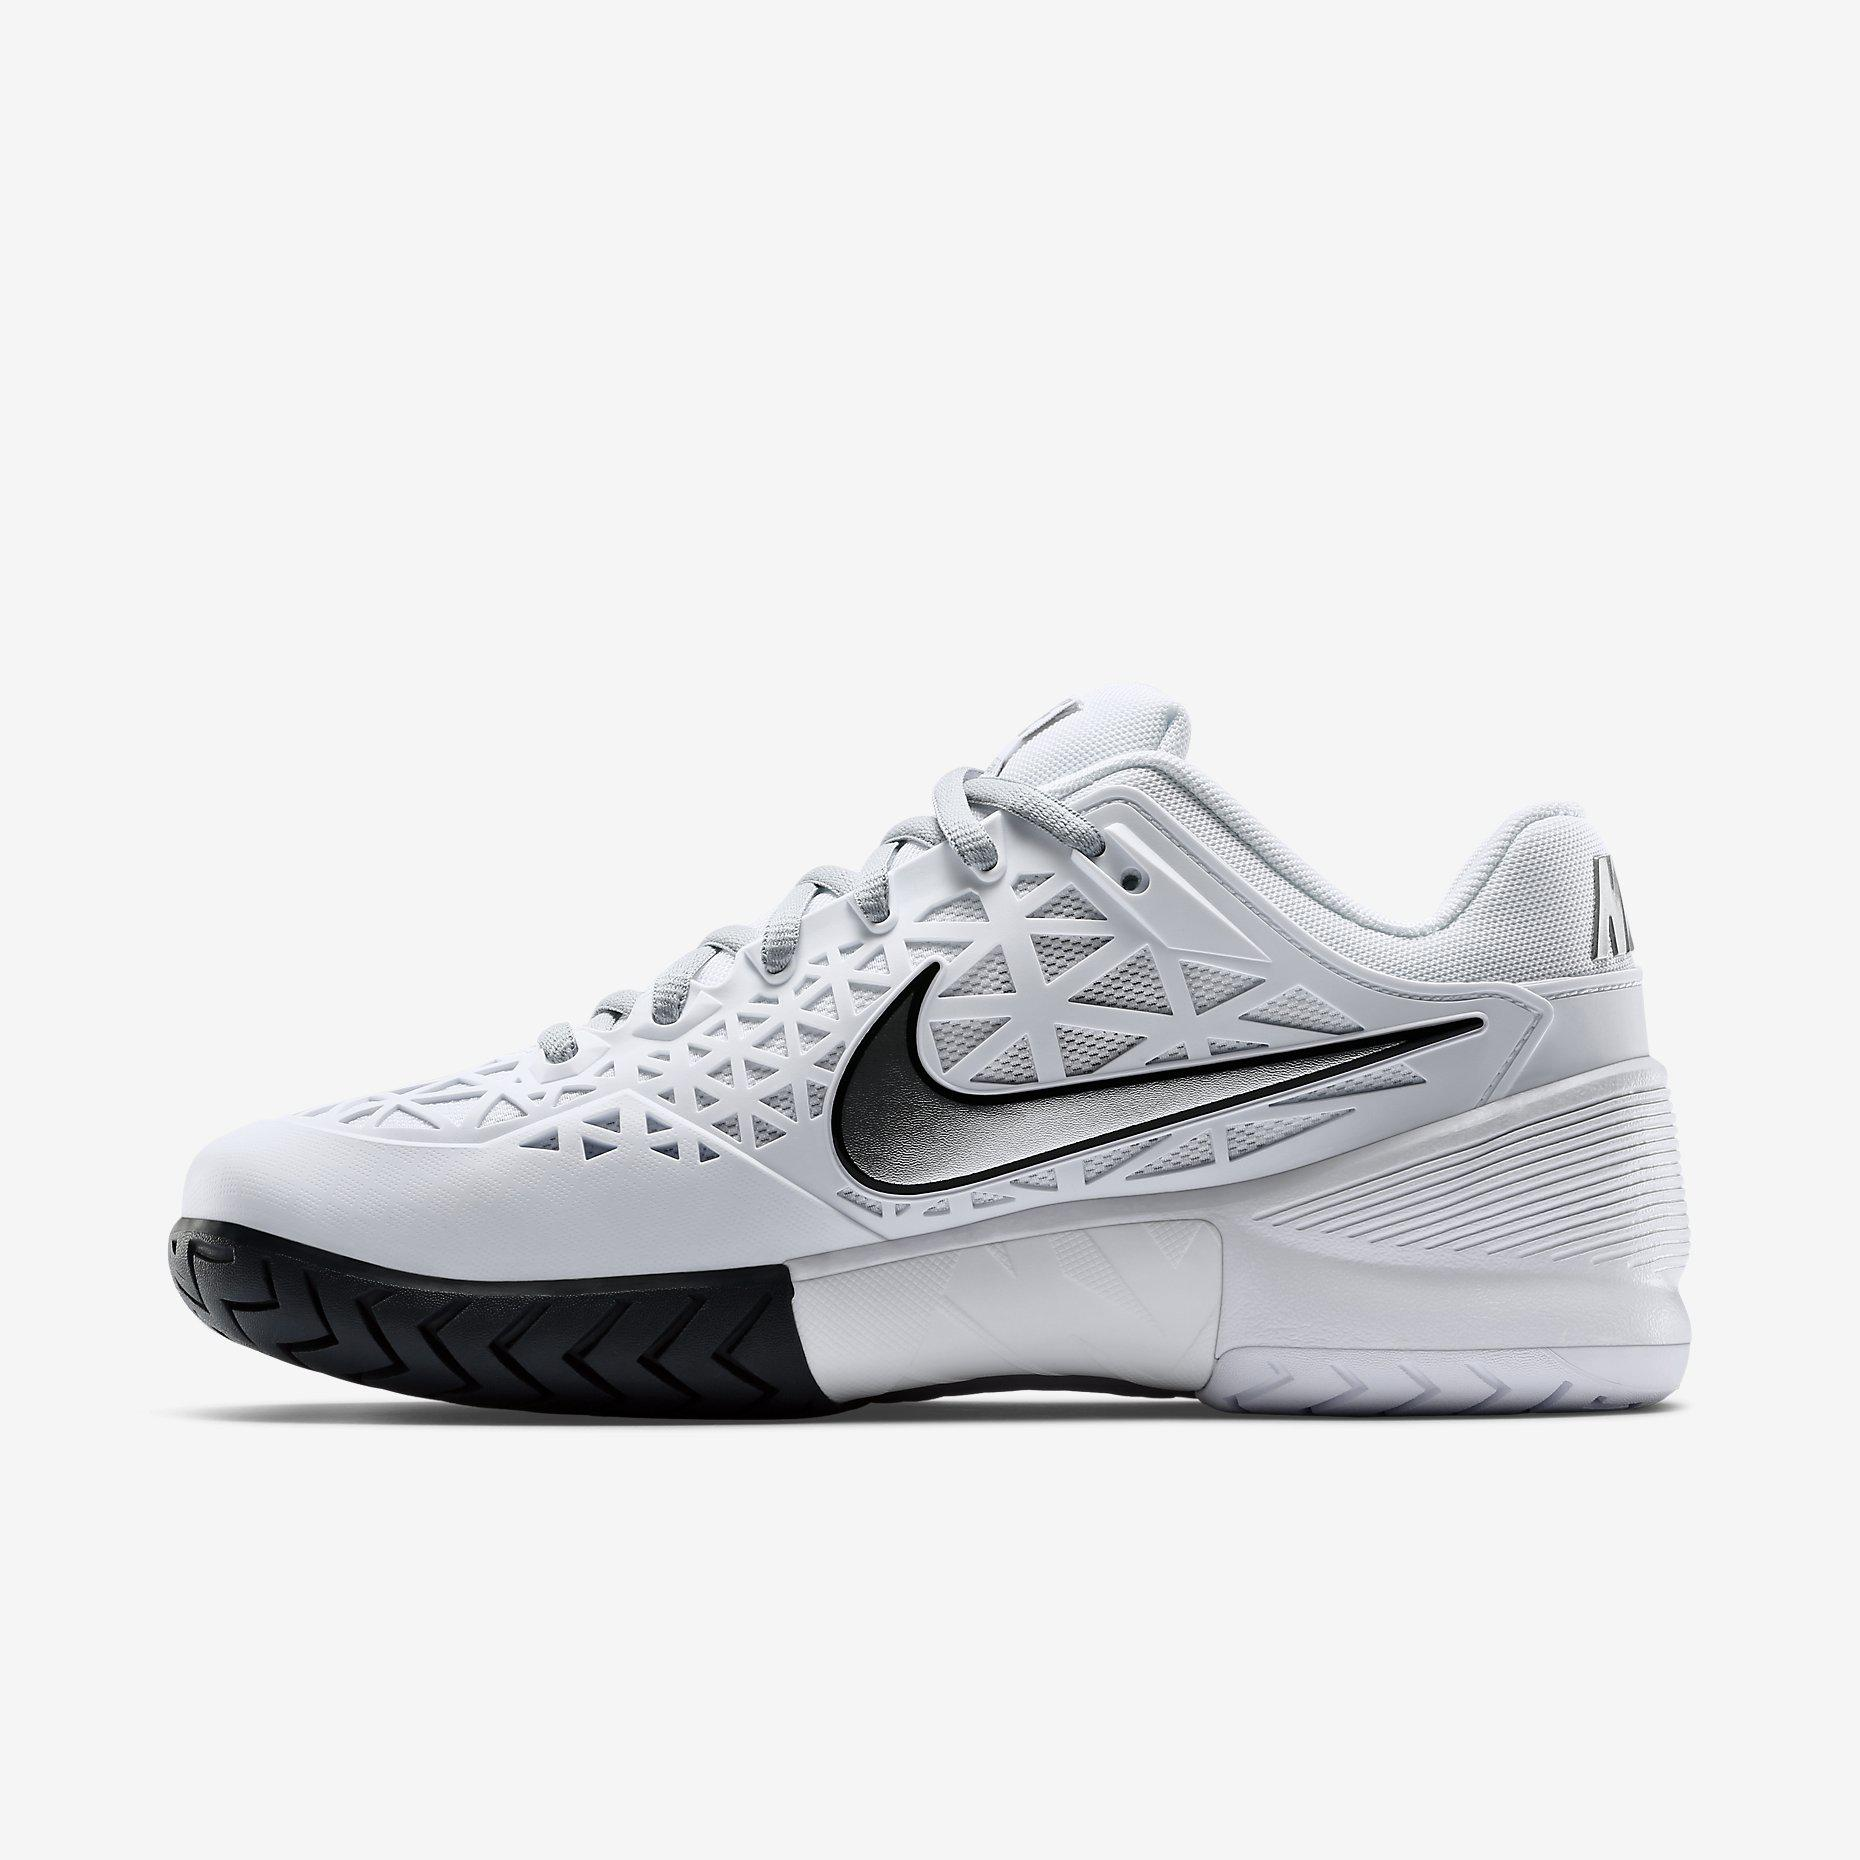 Discontinued White Nike Shoes For Women